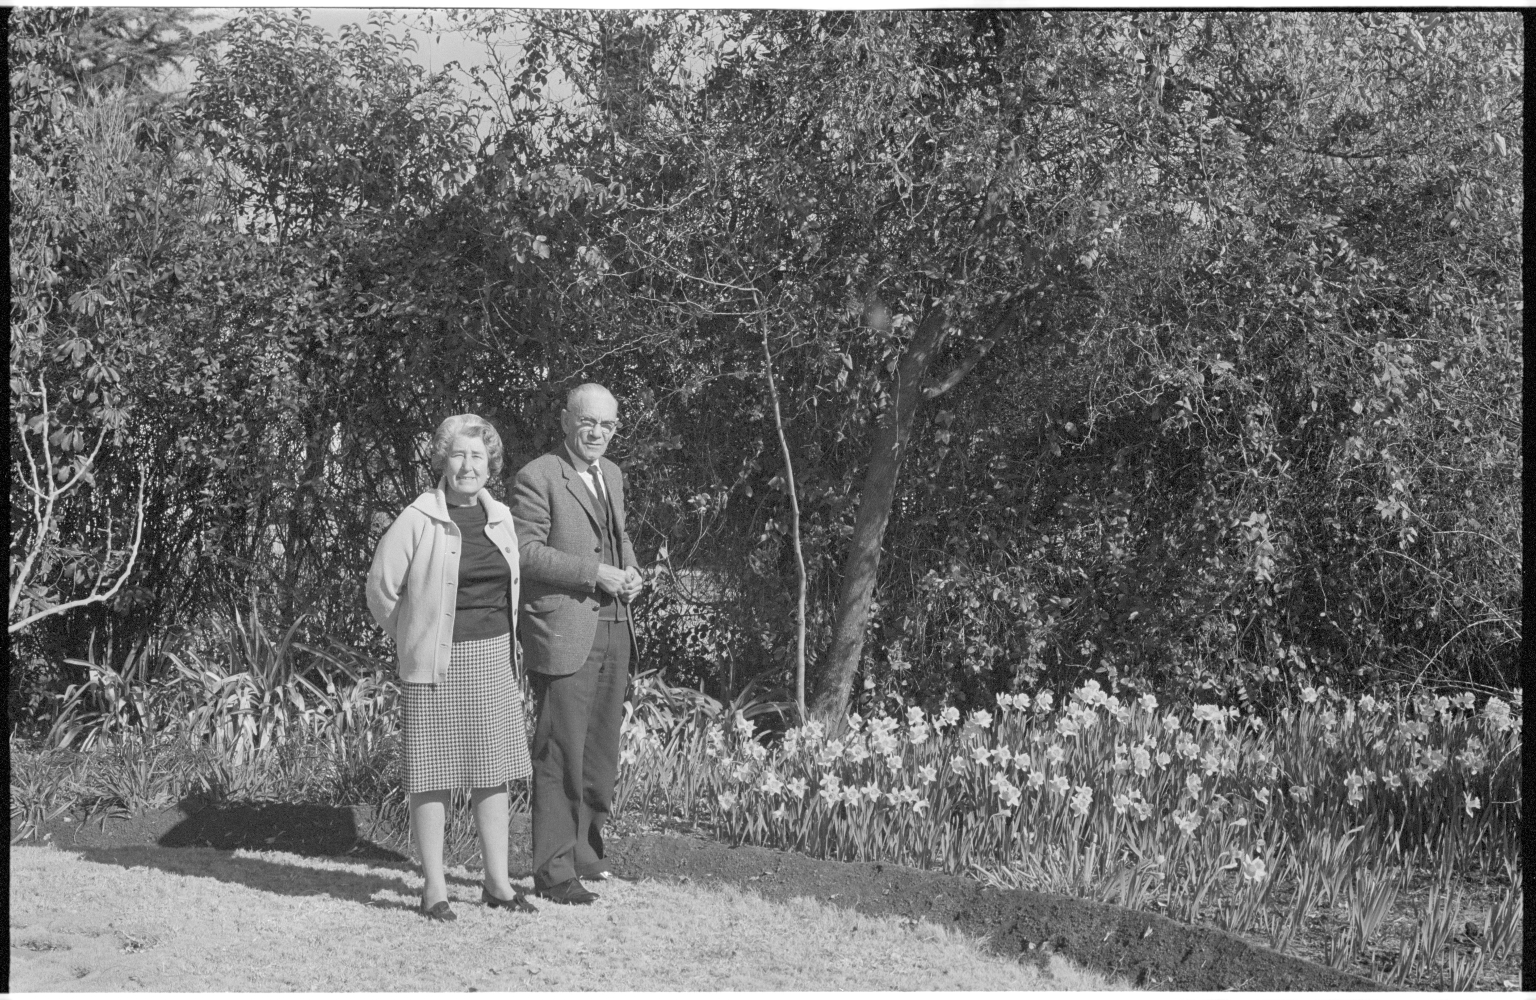 Dr. Hoffman and his wife in Cape Town, South Africa